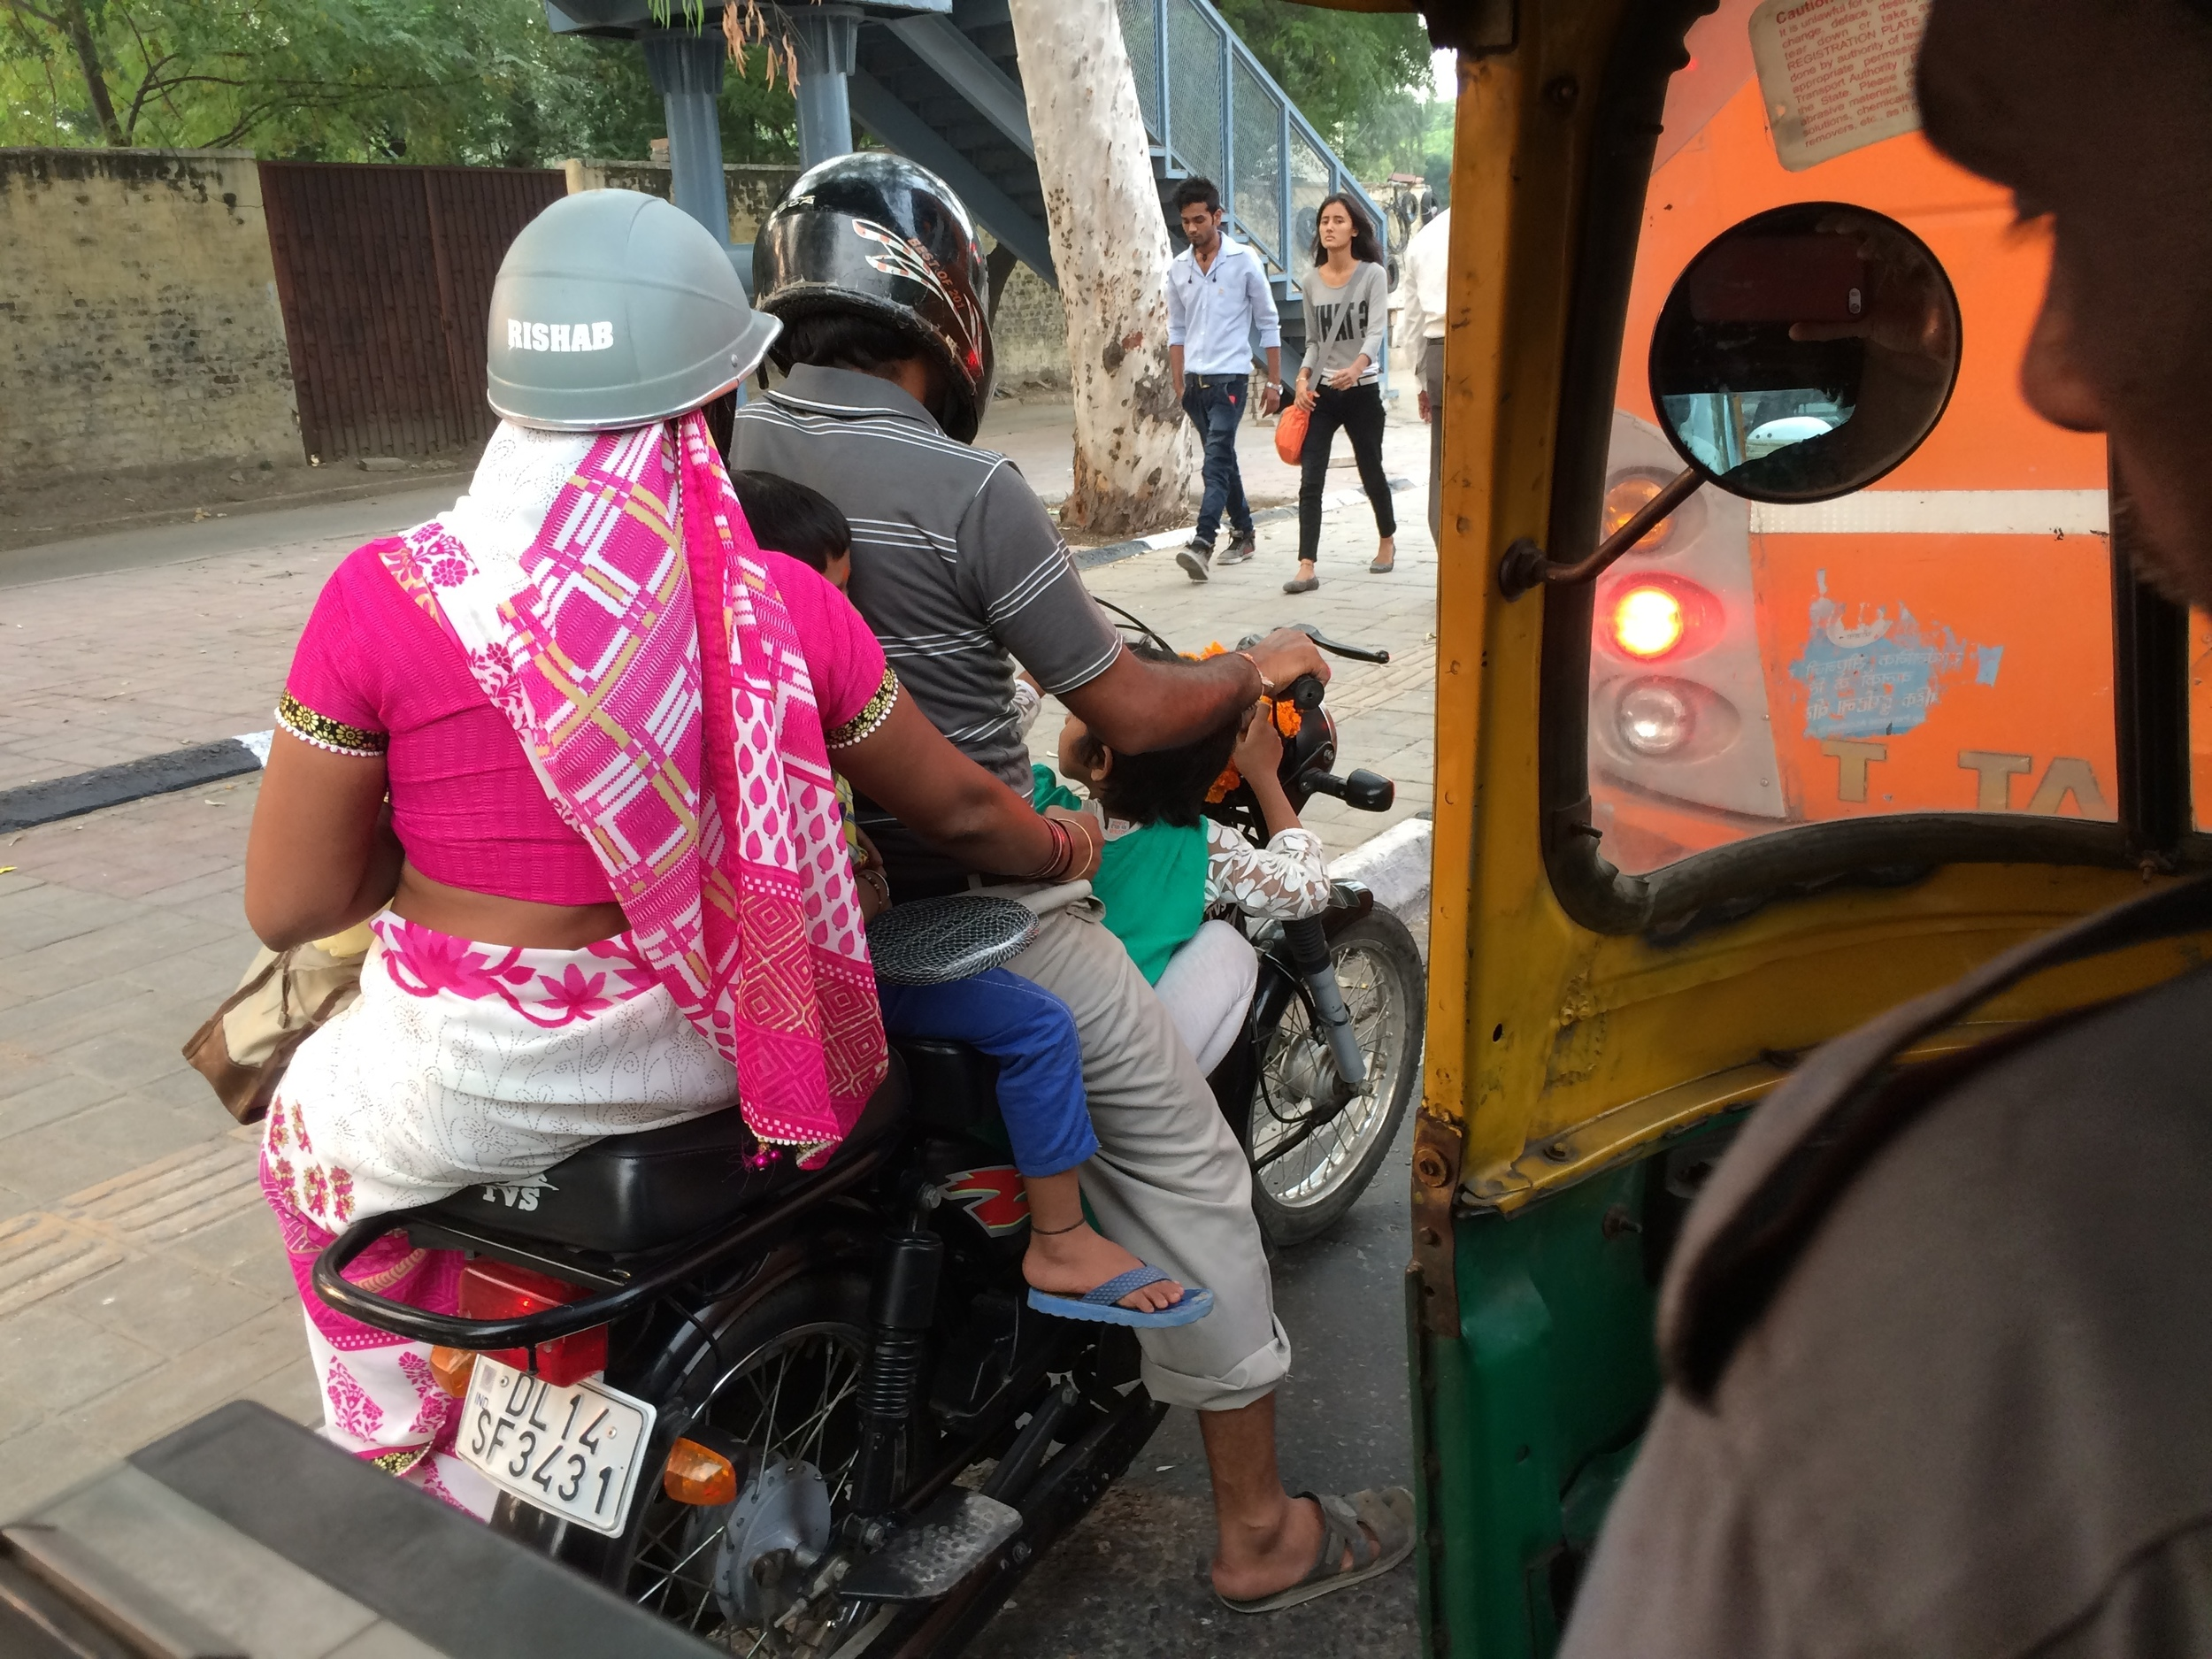 Four riders, two helmets, one motorbike - in New Delhi, India.